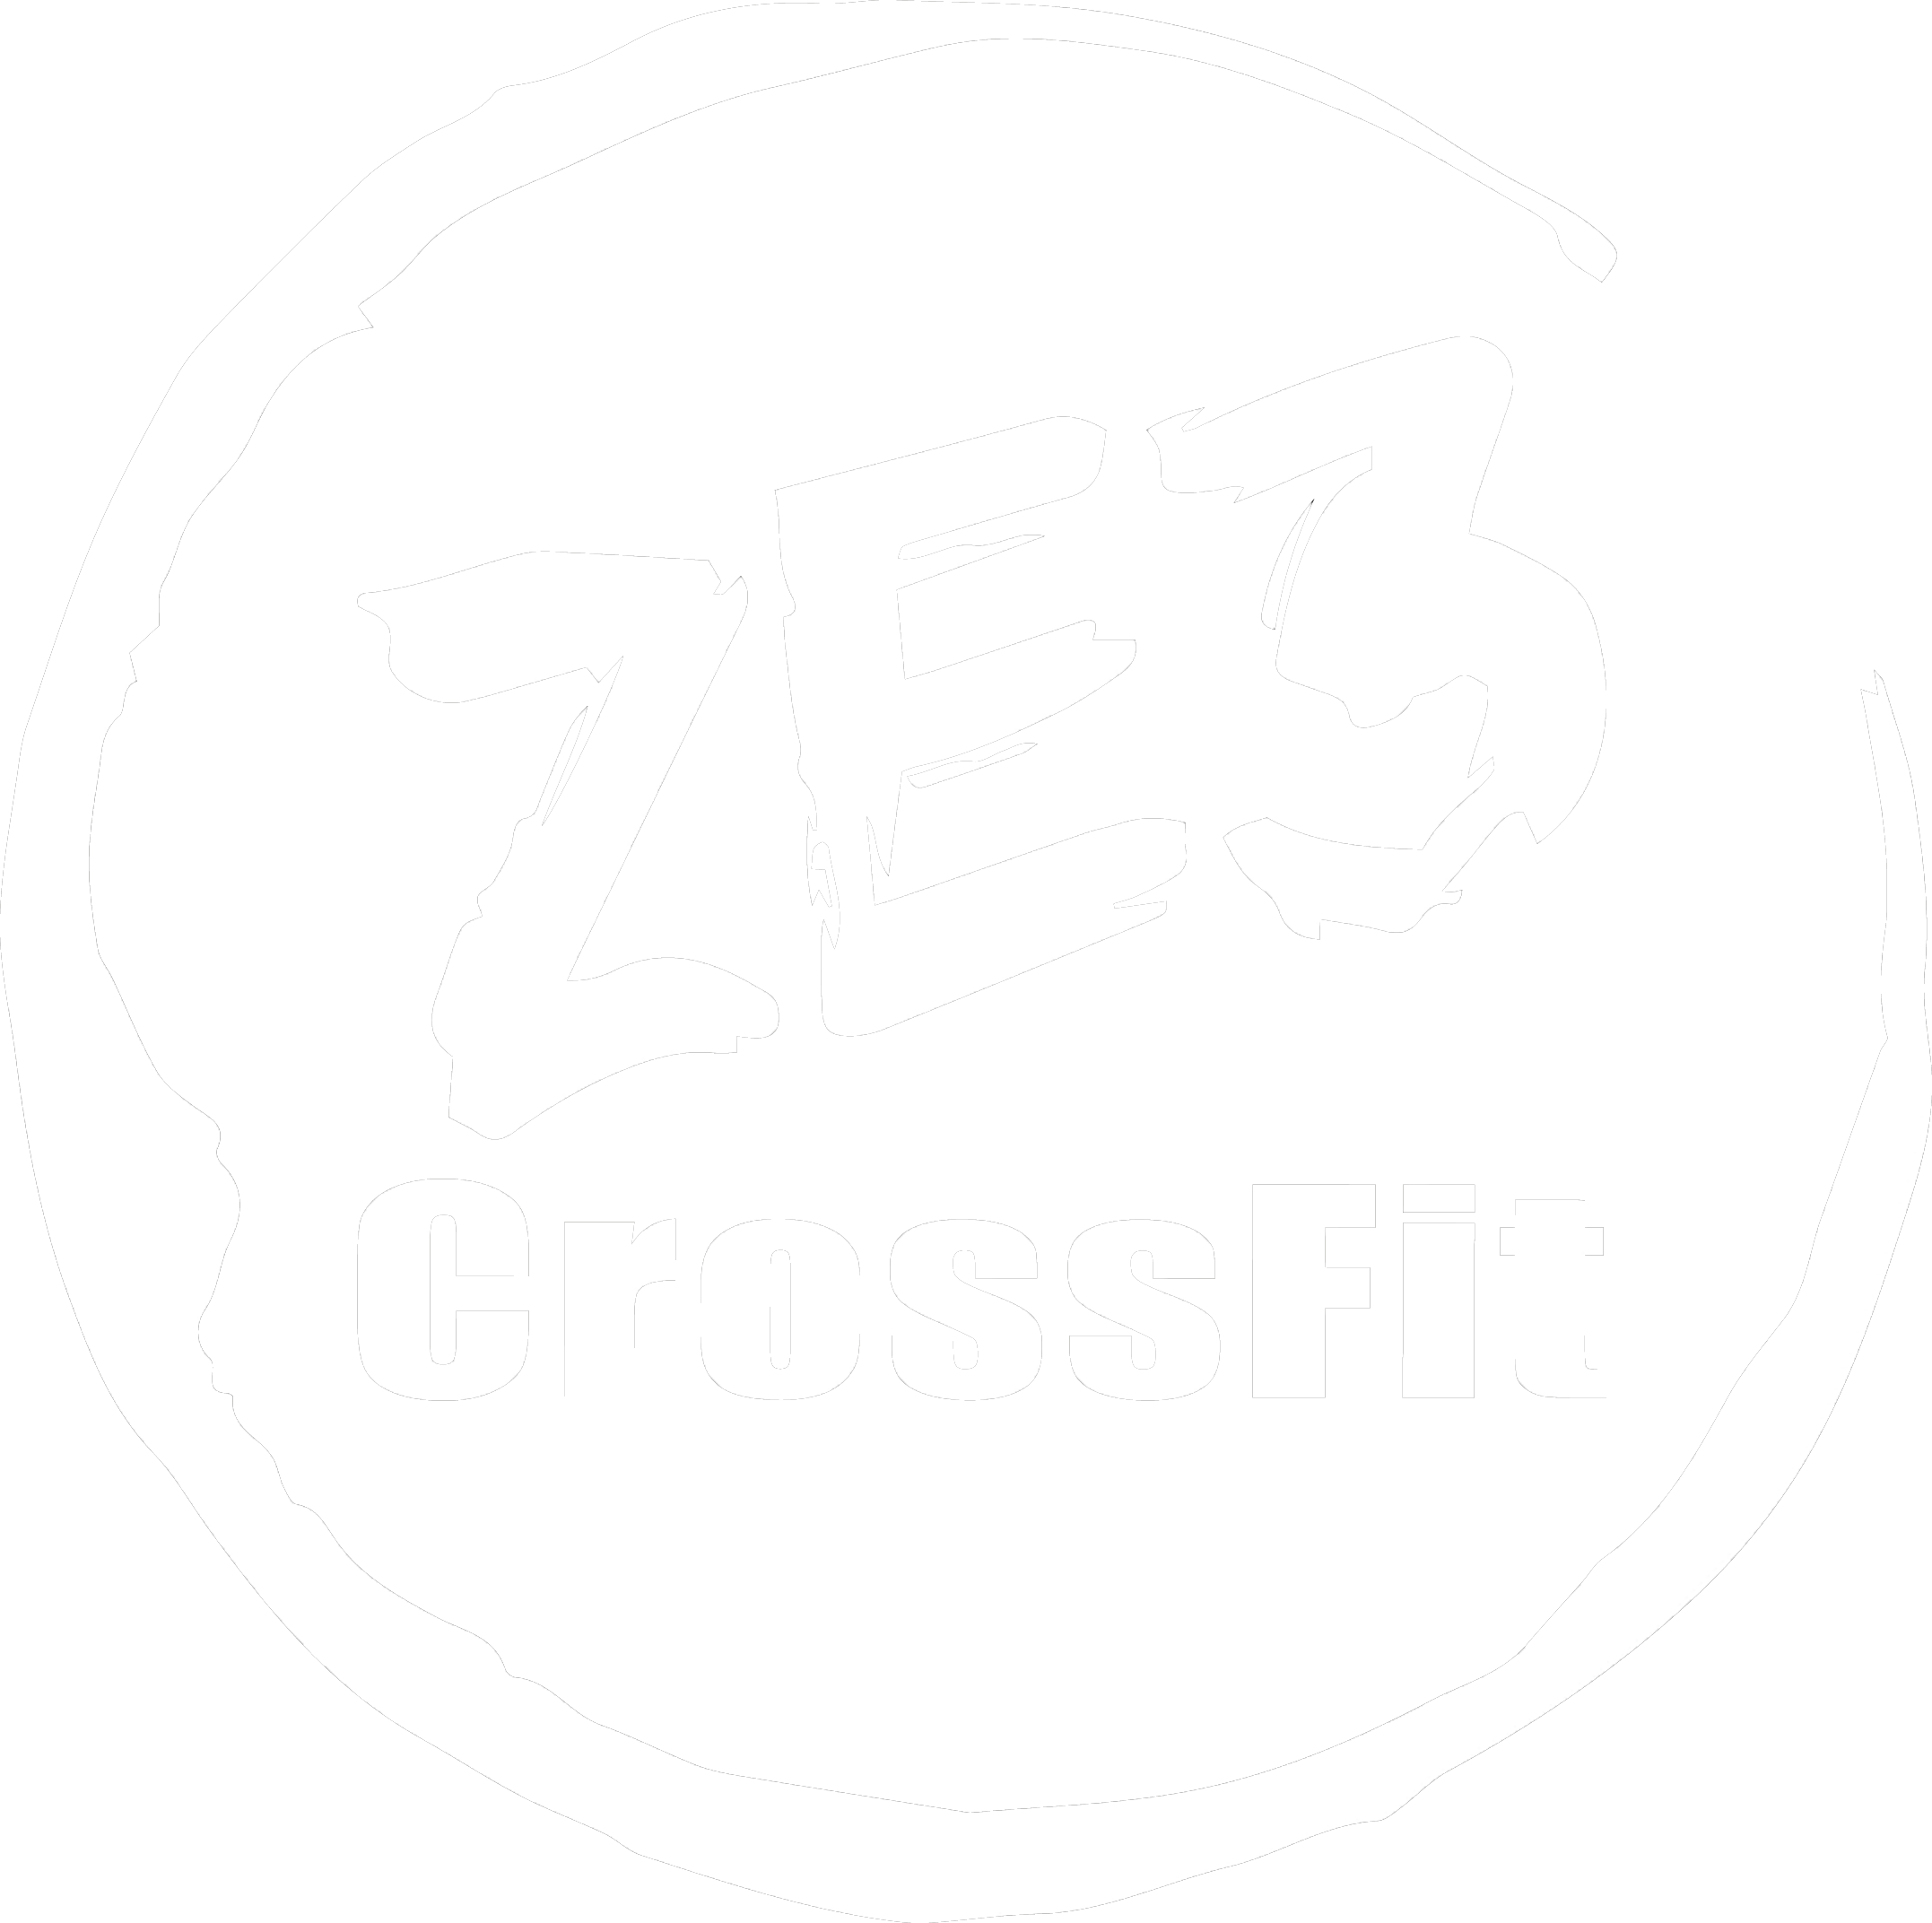 ZE3 CrossFit in Backnang